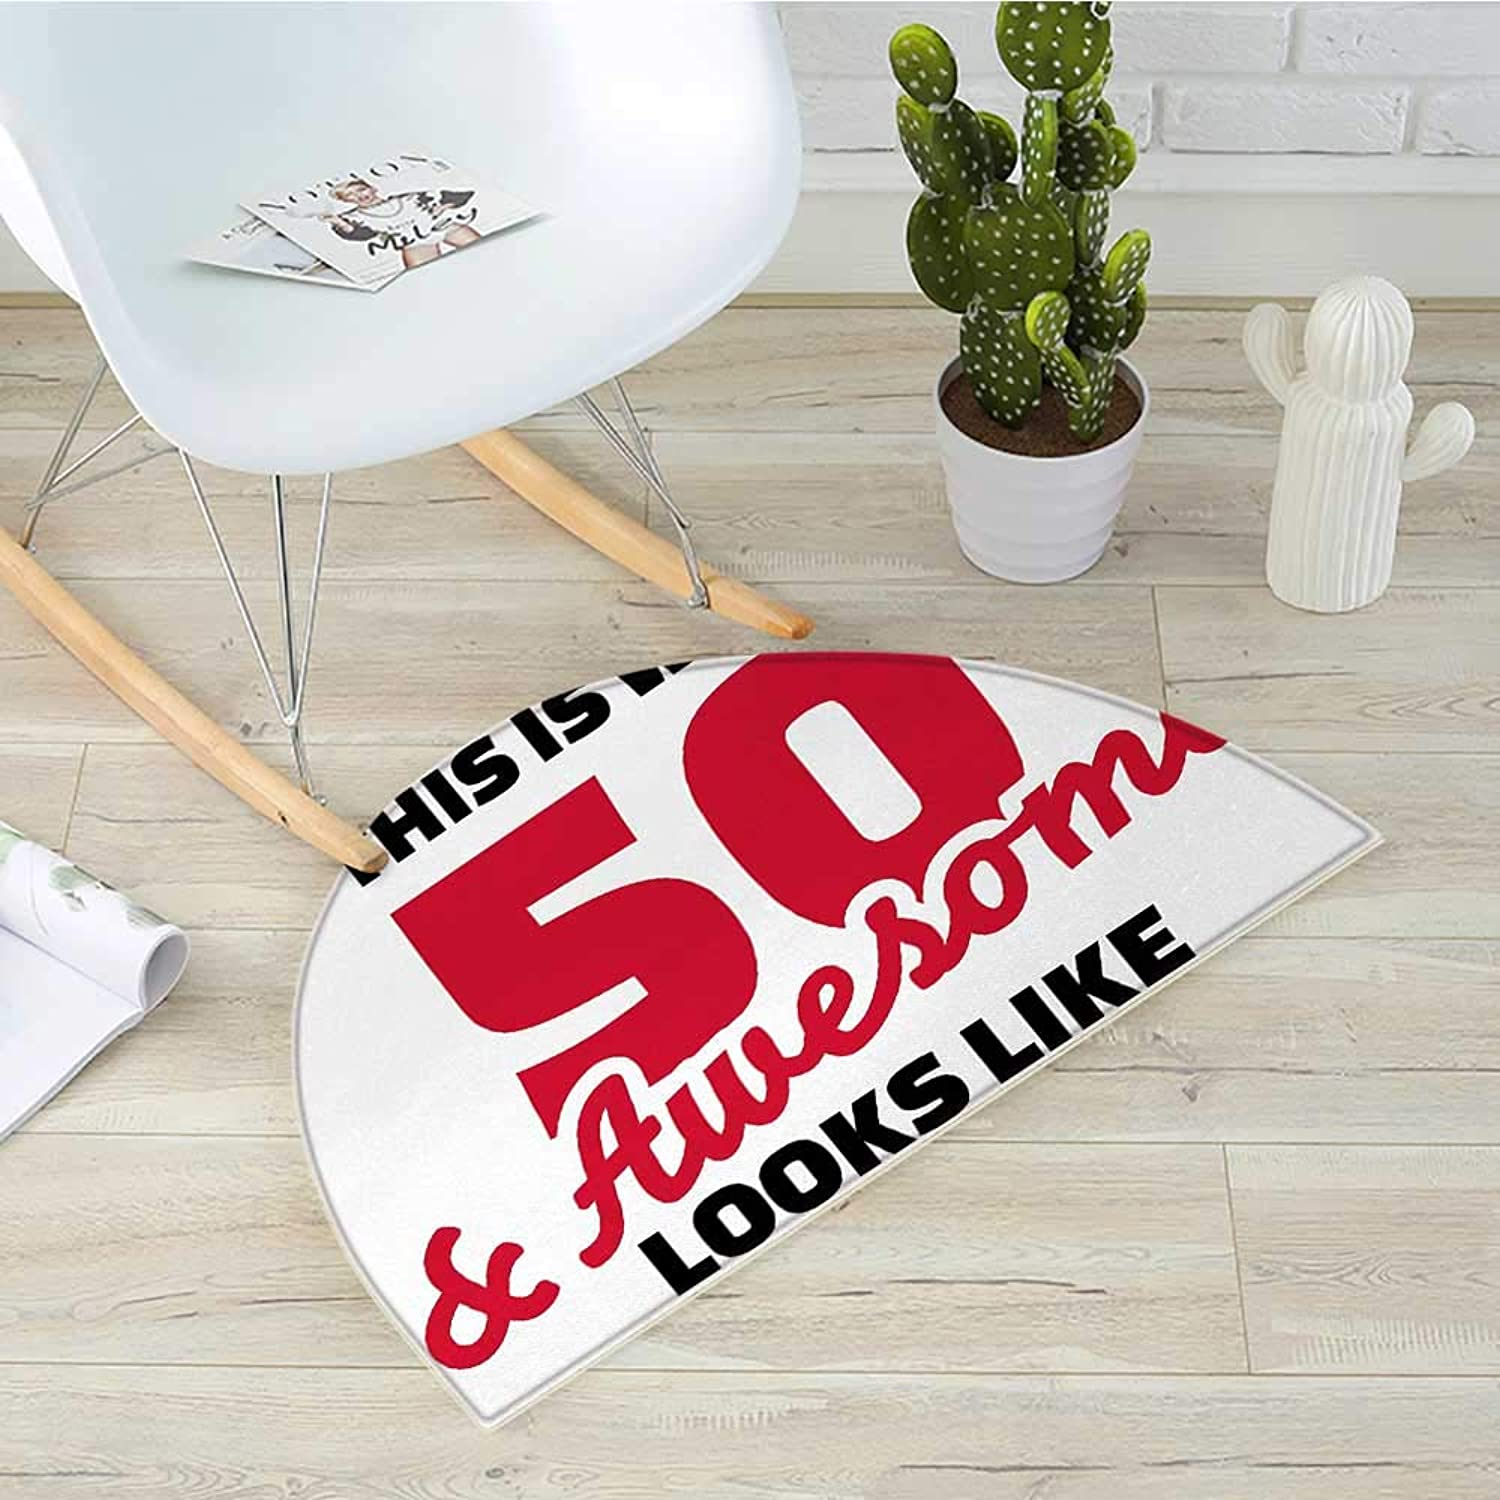 50th Birthday Half Round Door mats Fifty and Awesome Cool and Fun Hand Written Style Happy Cheer Slogan Bathroom Mat H 39.3  xD 59  Red Black White